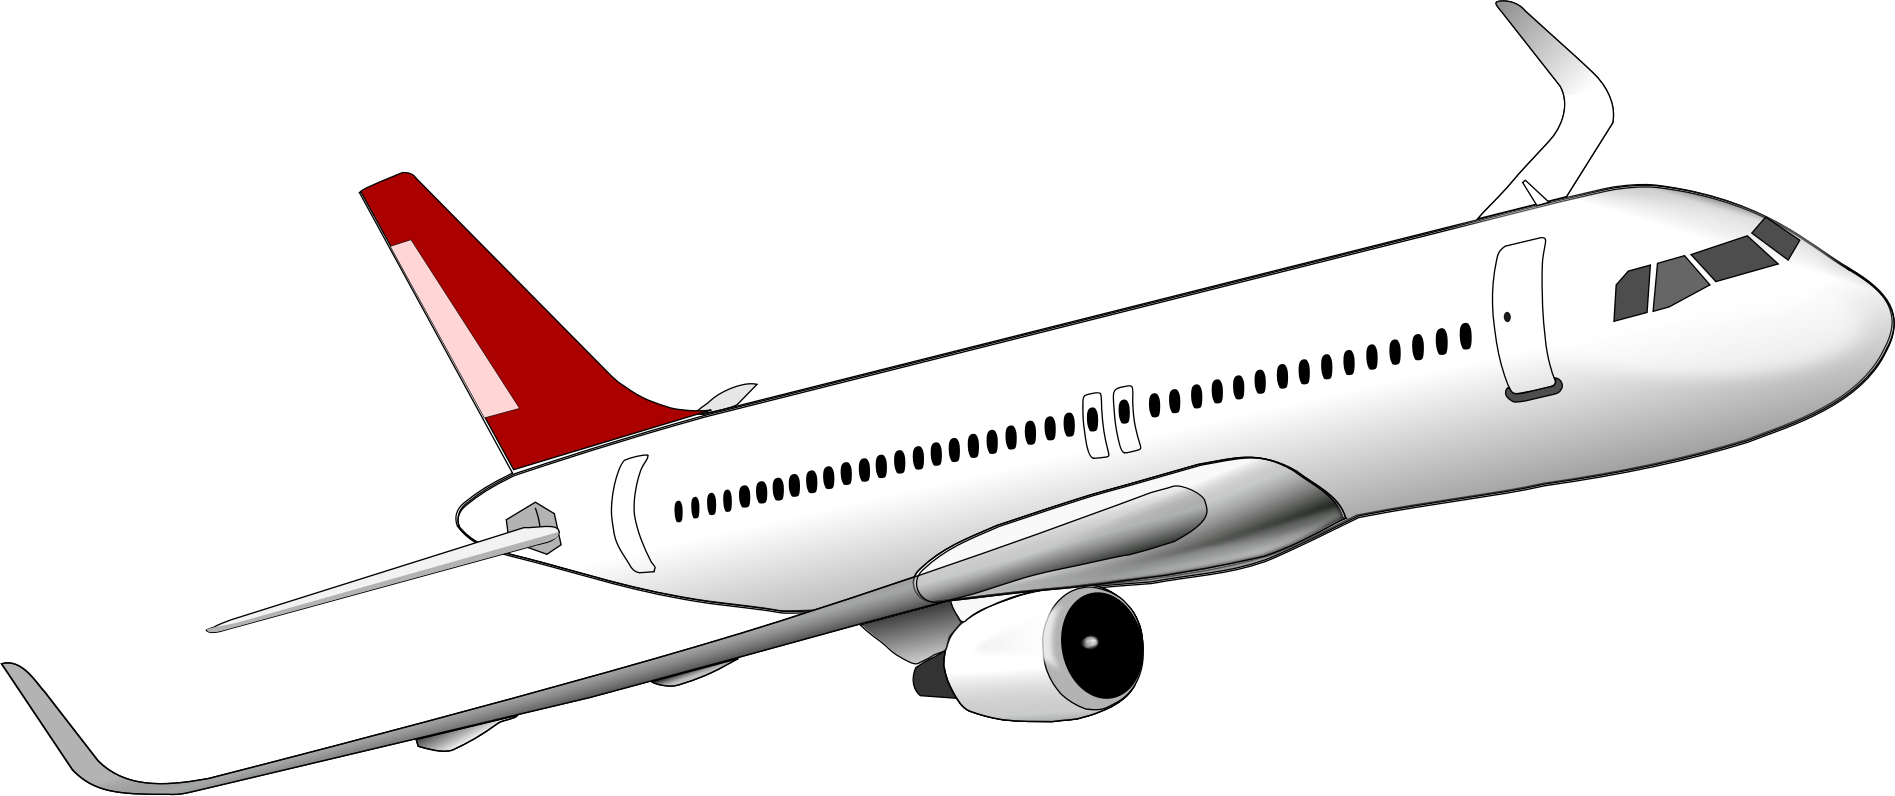 Jet clipart commercial airplane. Jokingart com download free